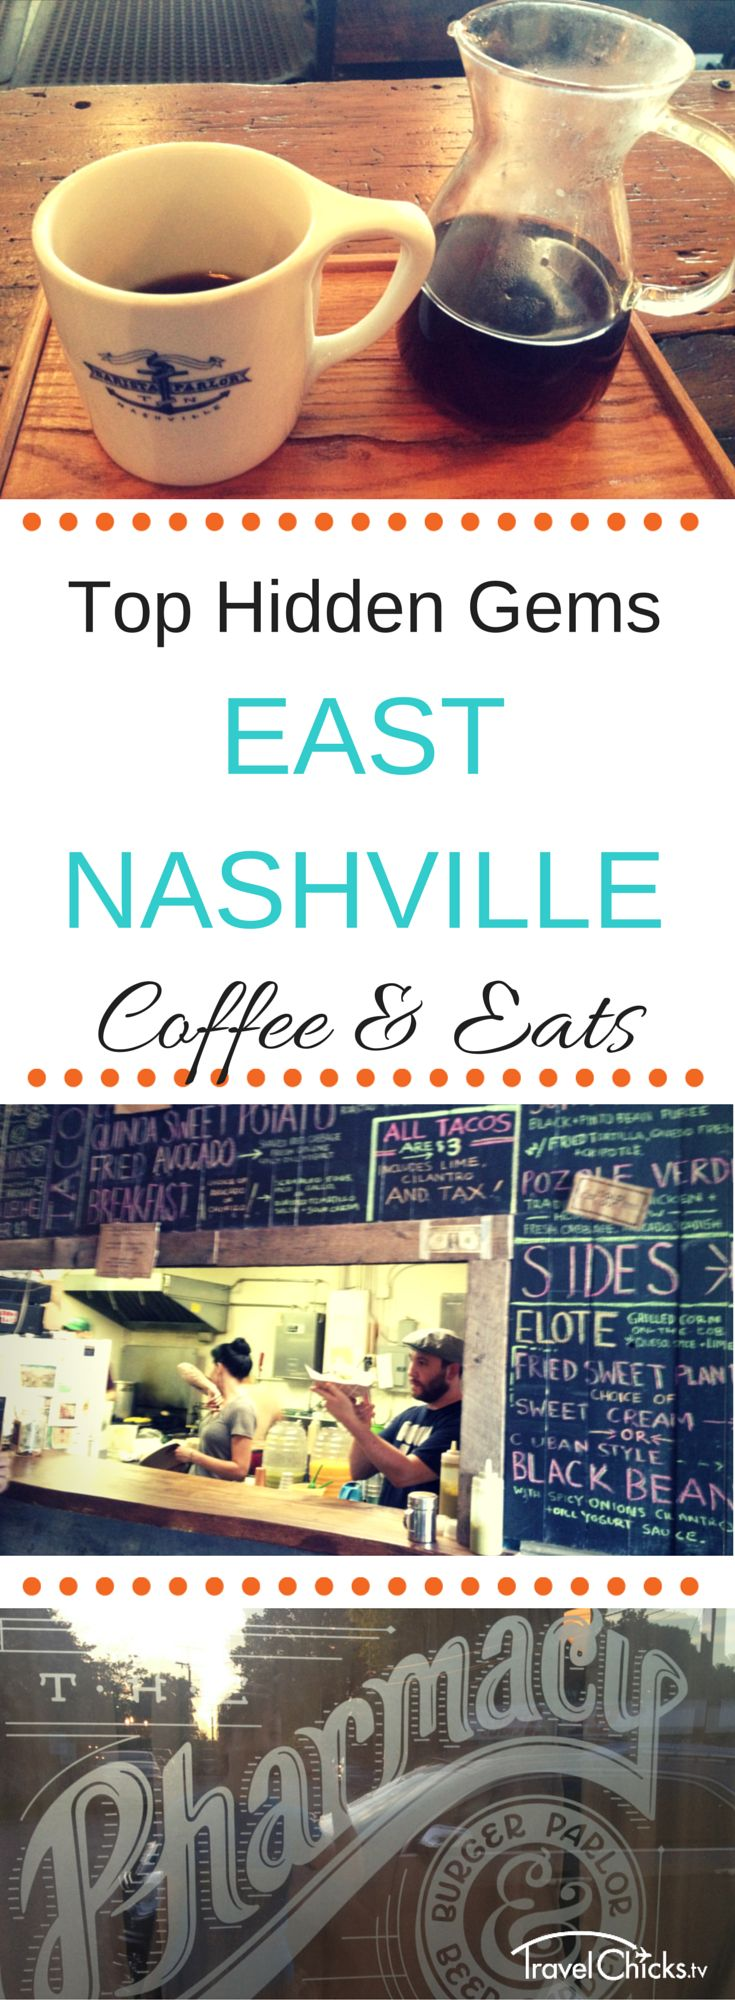 The Top Hidden Local Spots in East Nashville - Hip coffee shop and quaint places to eat! Restaurant Pharmacy Burger, Mas Tacos, Barista Parlor, and more #nashville